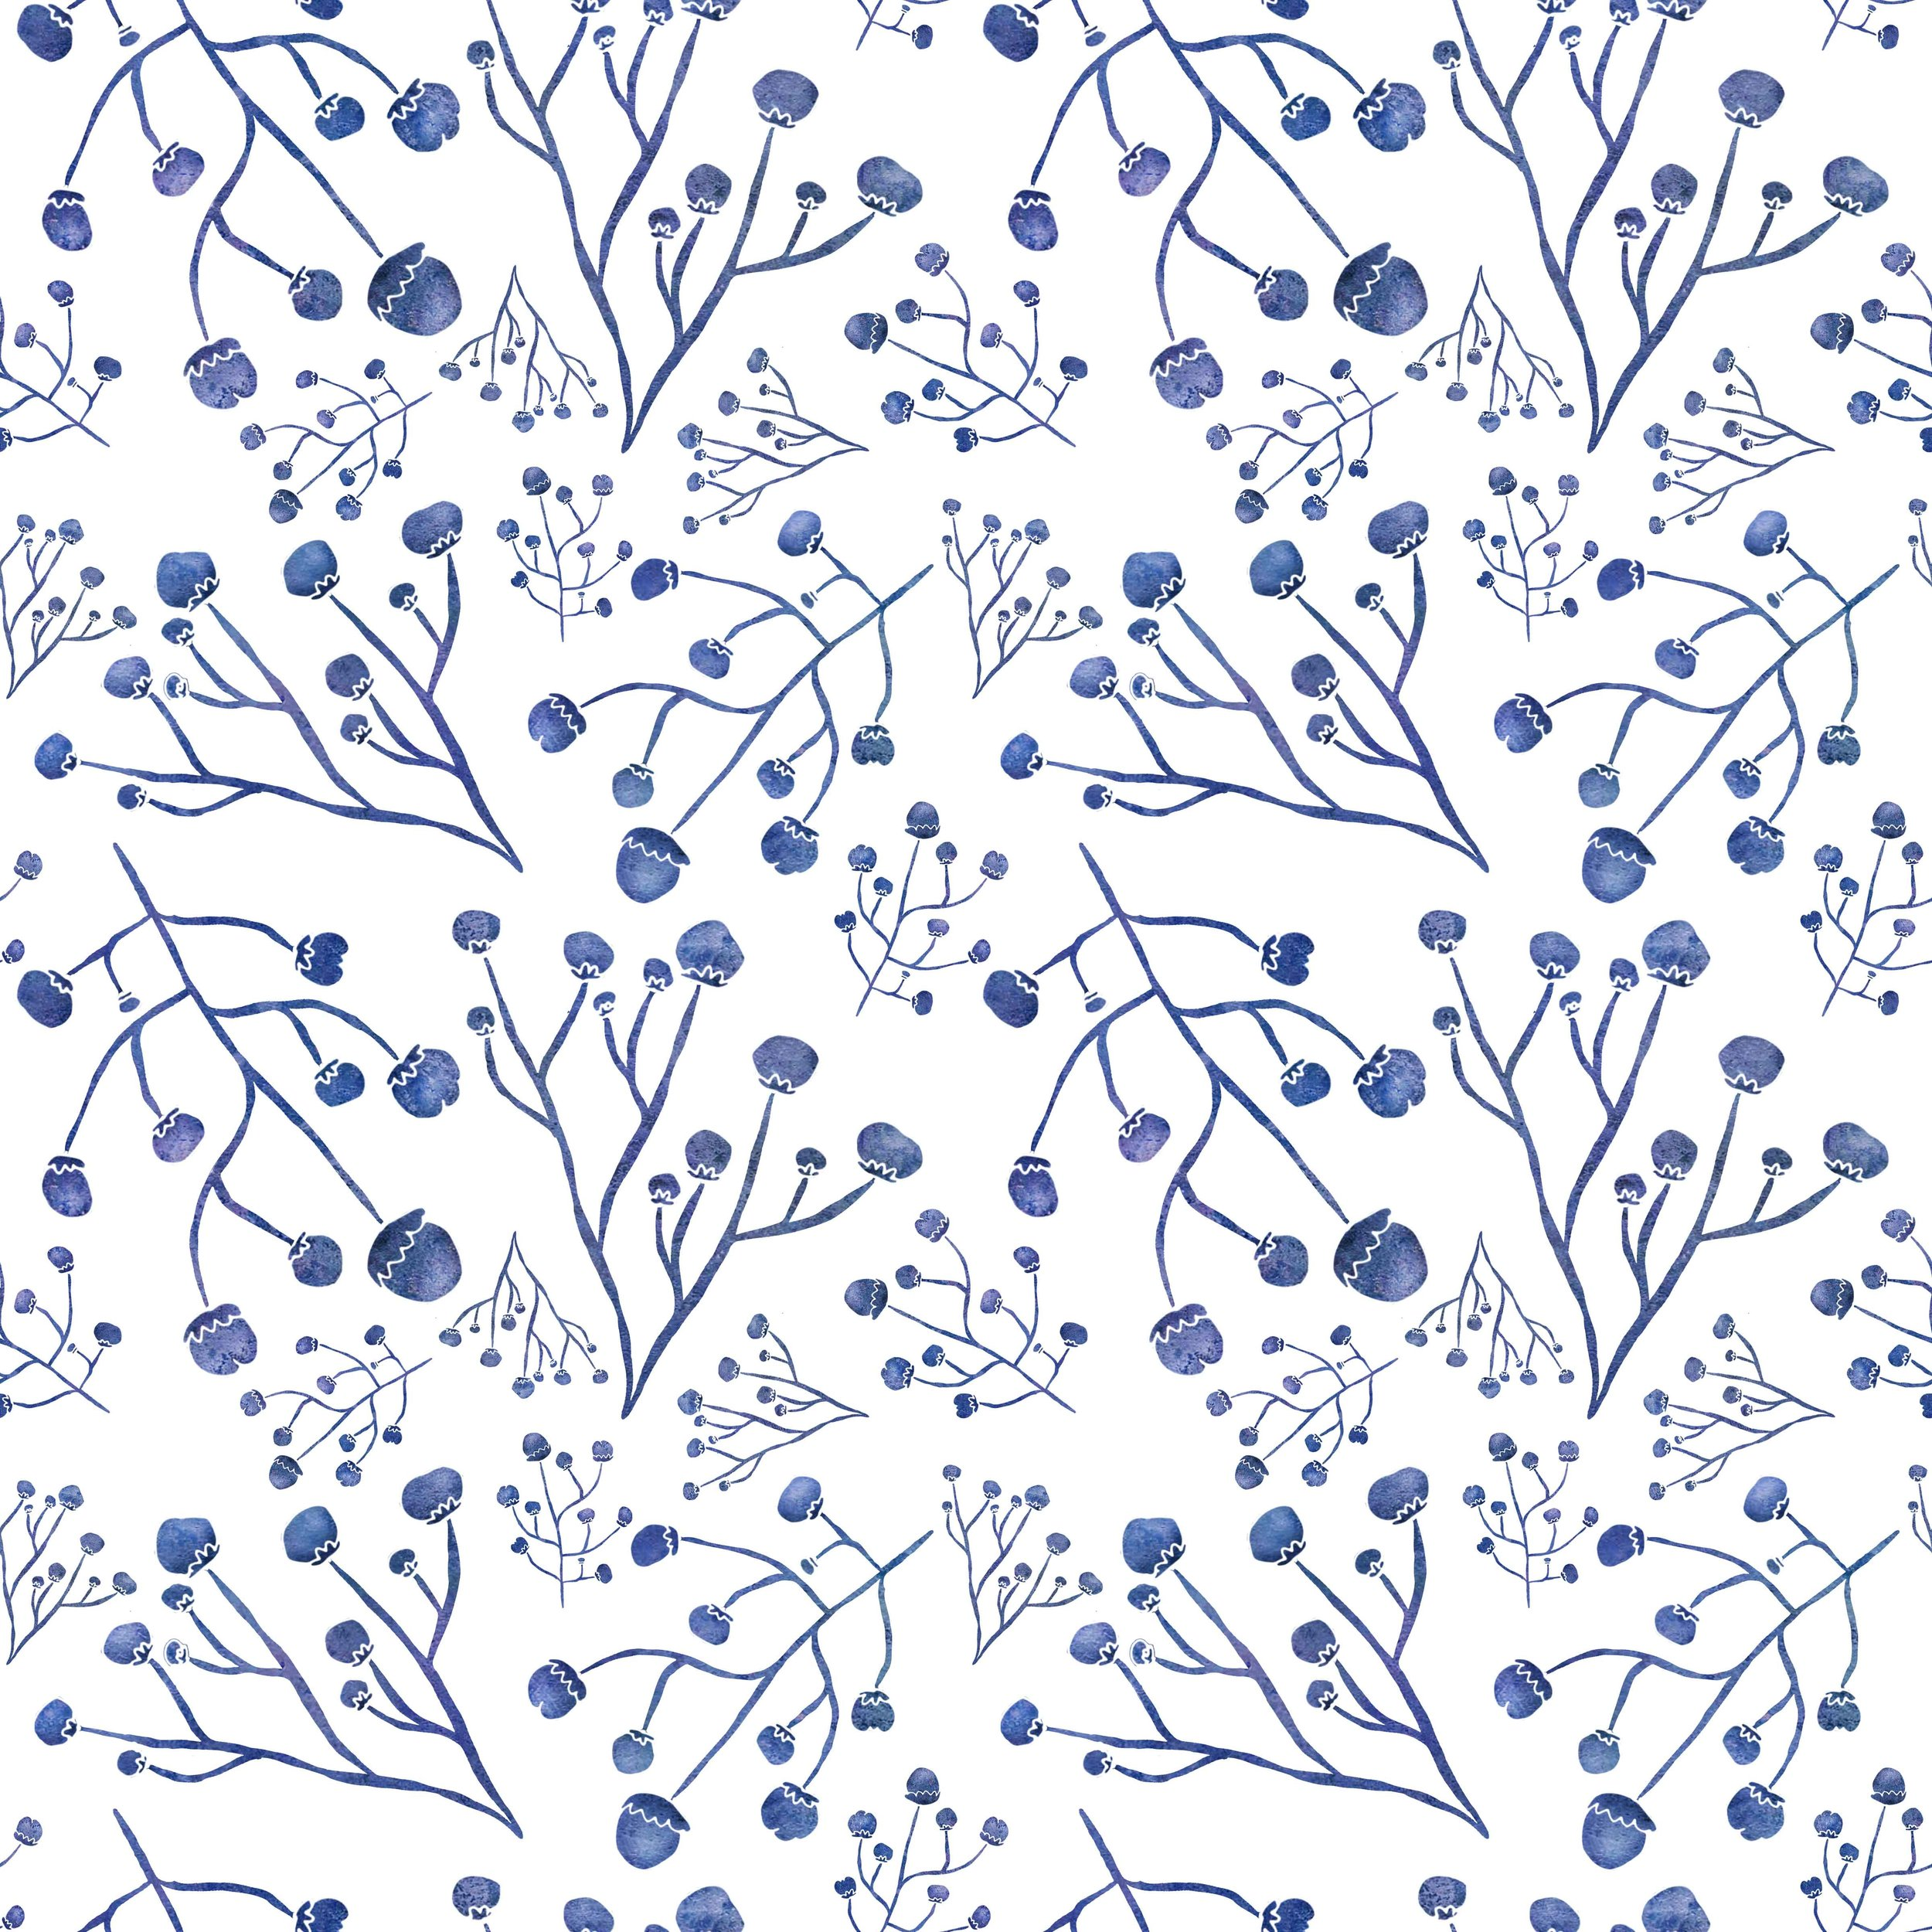 blue-and-white-cotton-pattern.jpg